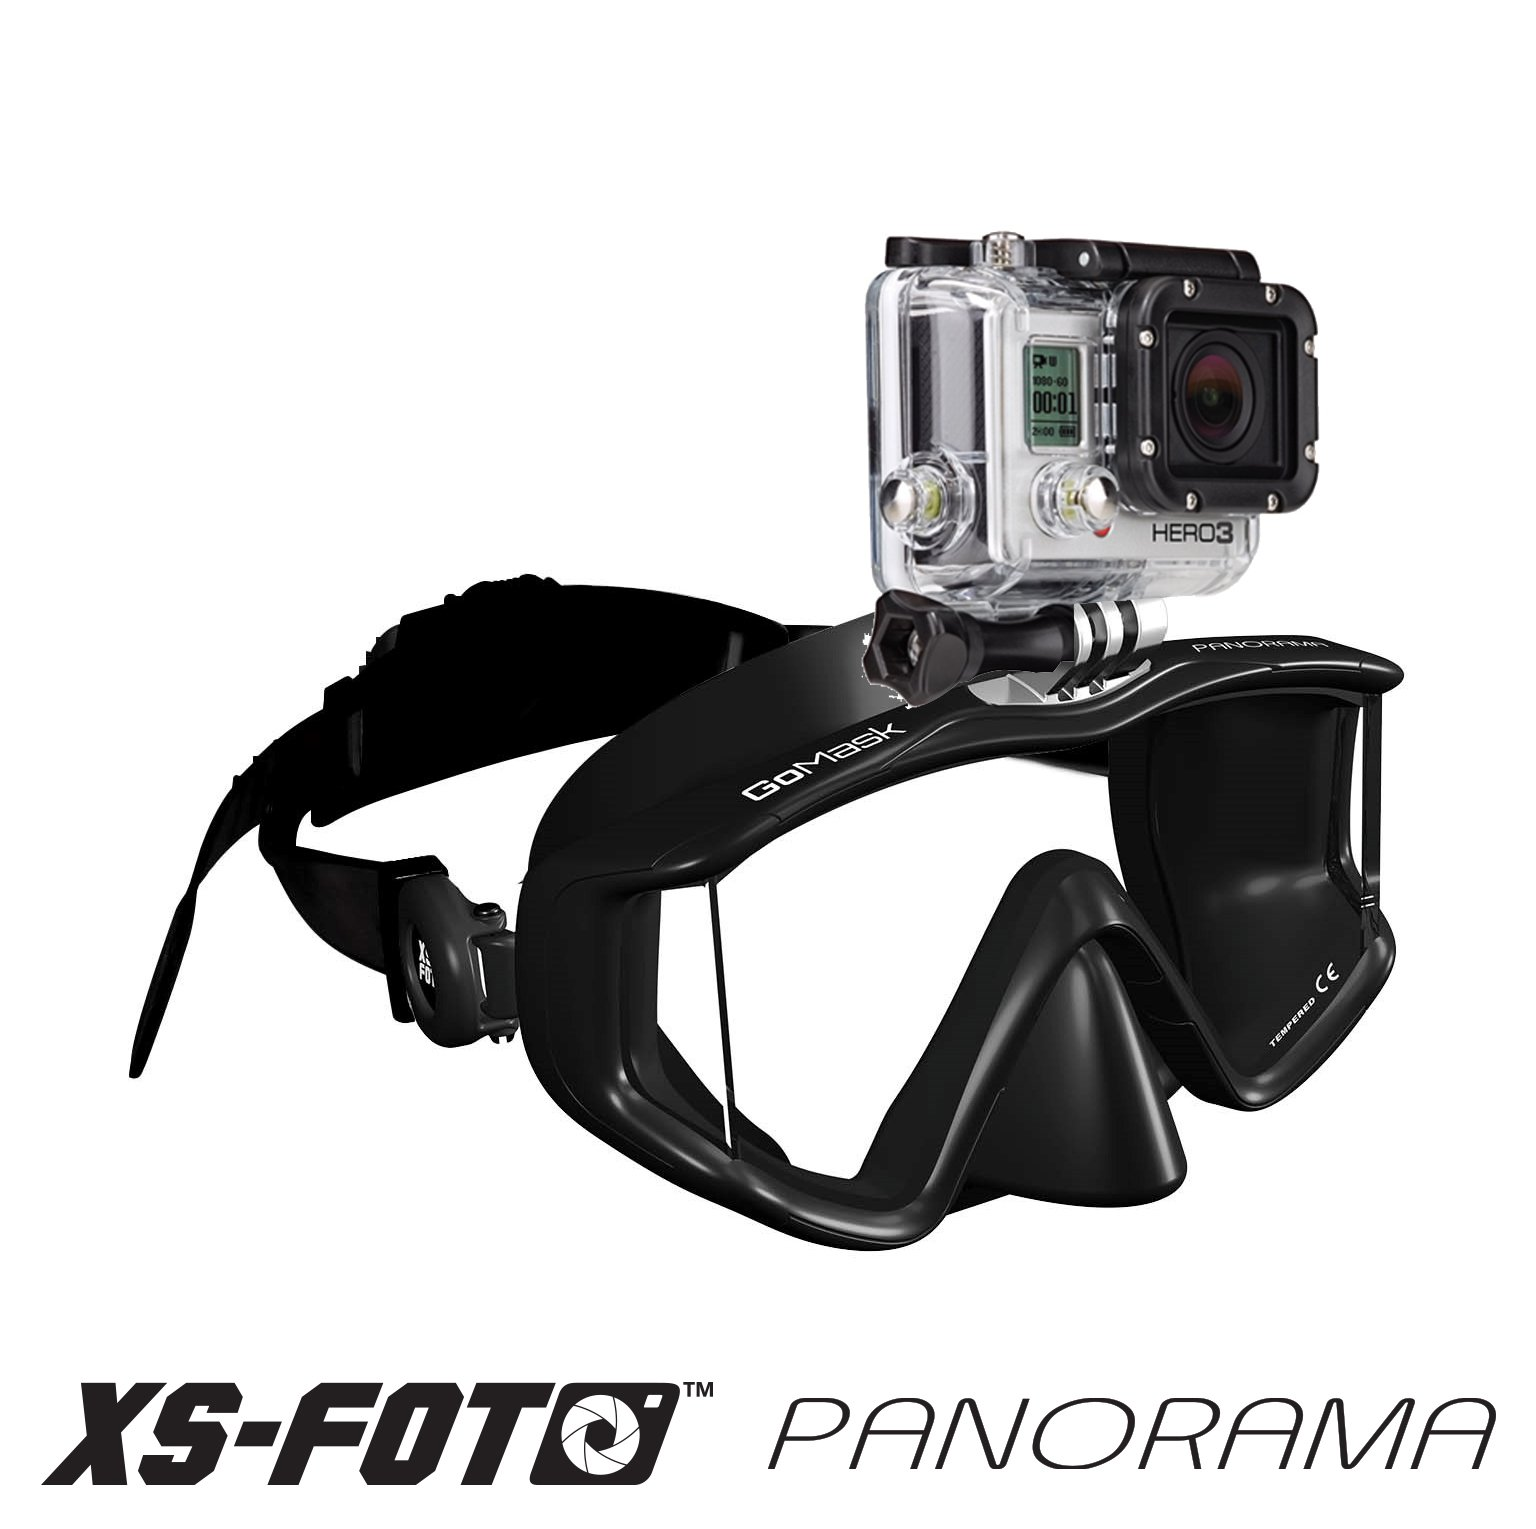 XS Foto Panorama - 3 Window - Extra Qwik Comfort Strap - Built-in Stainless Steel Camera Mount - Diving Mask for GoPro, GoMask (Black Silicone) (MA580BS) by XS Foto